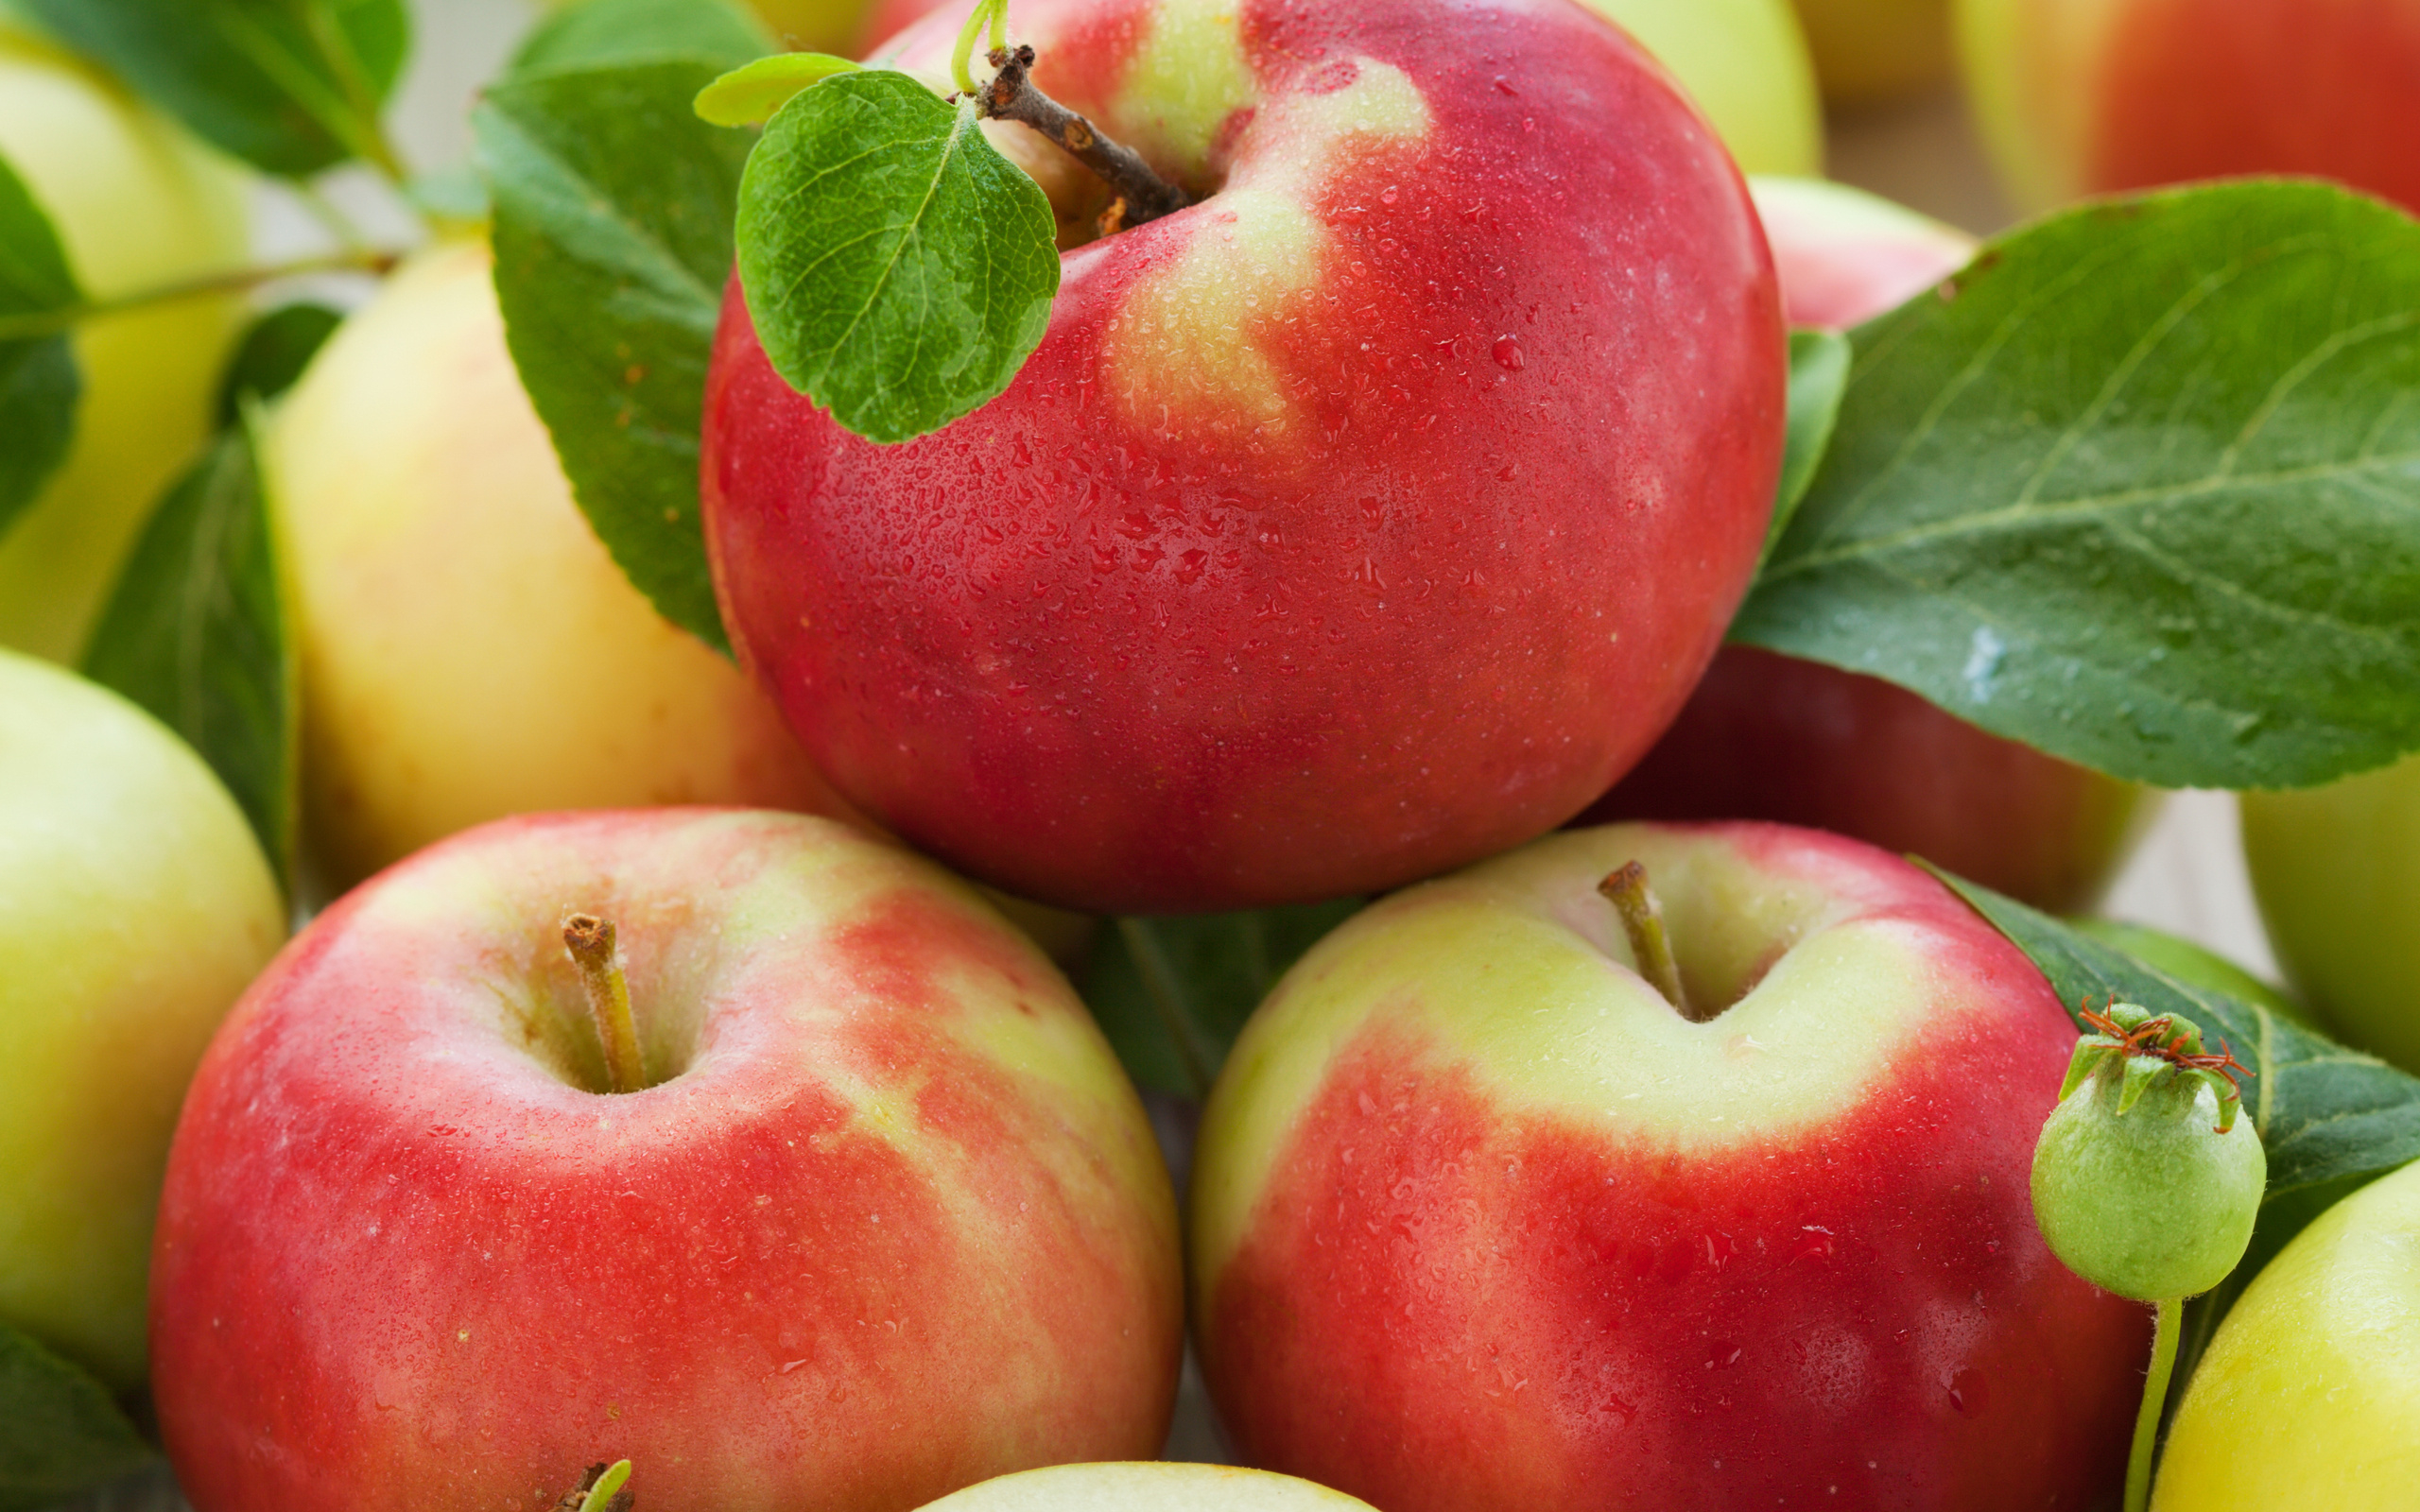 Ripe apples wallpapers and images   wallpapers pictures photos 2560x1600